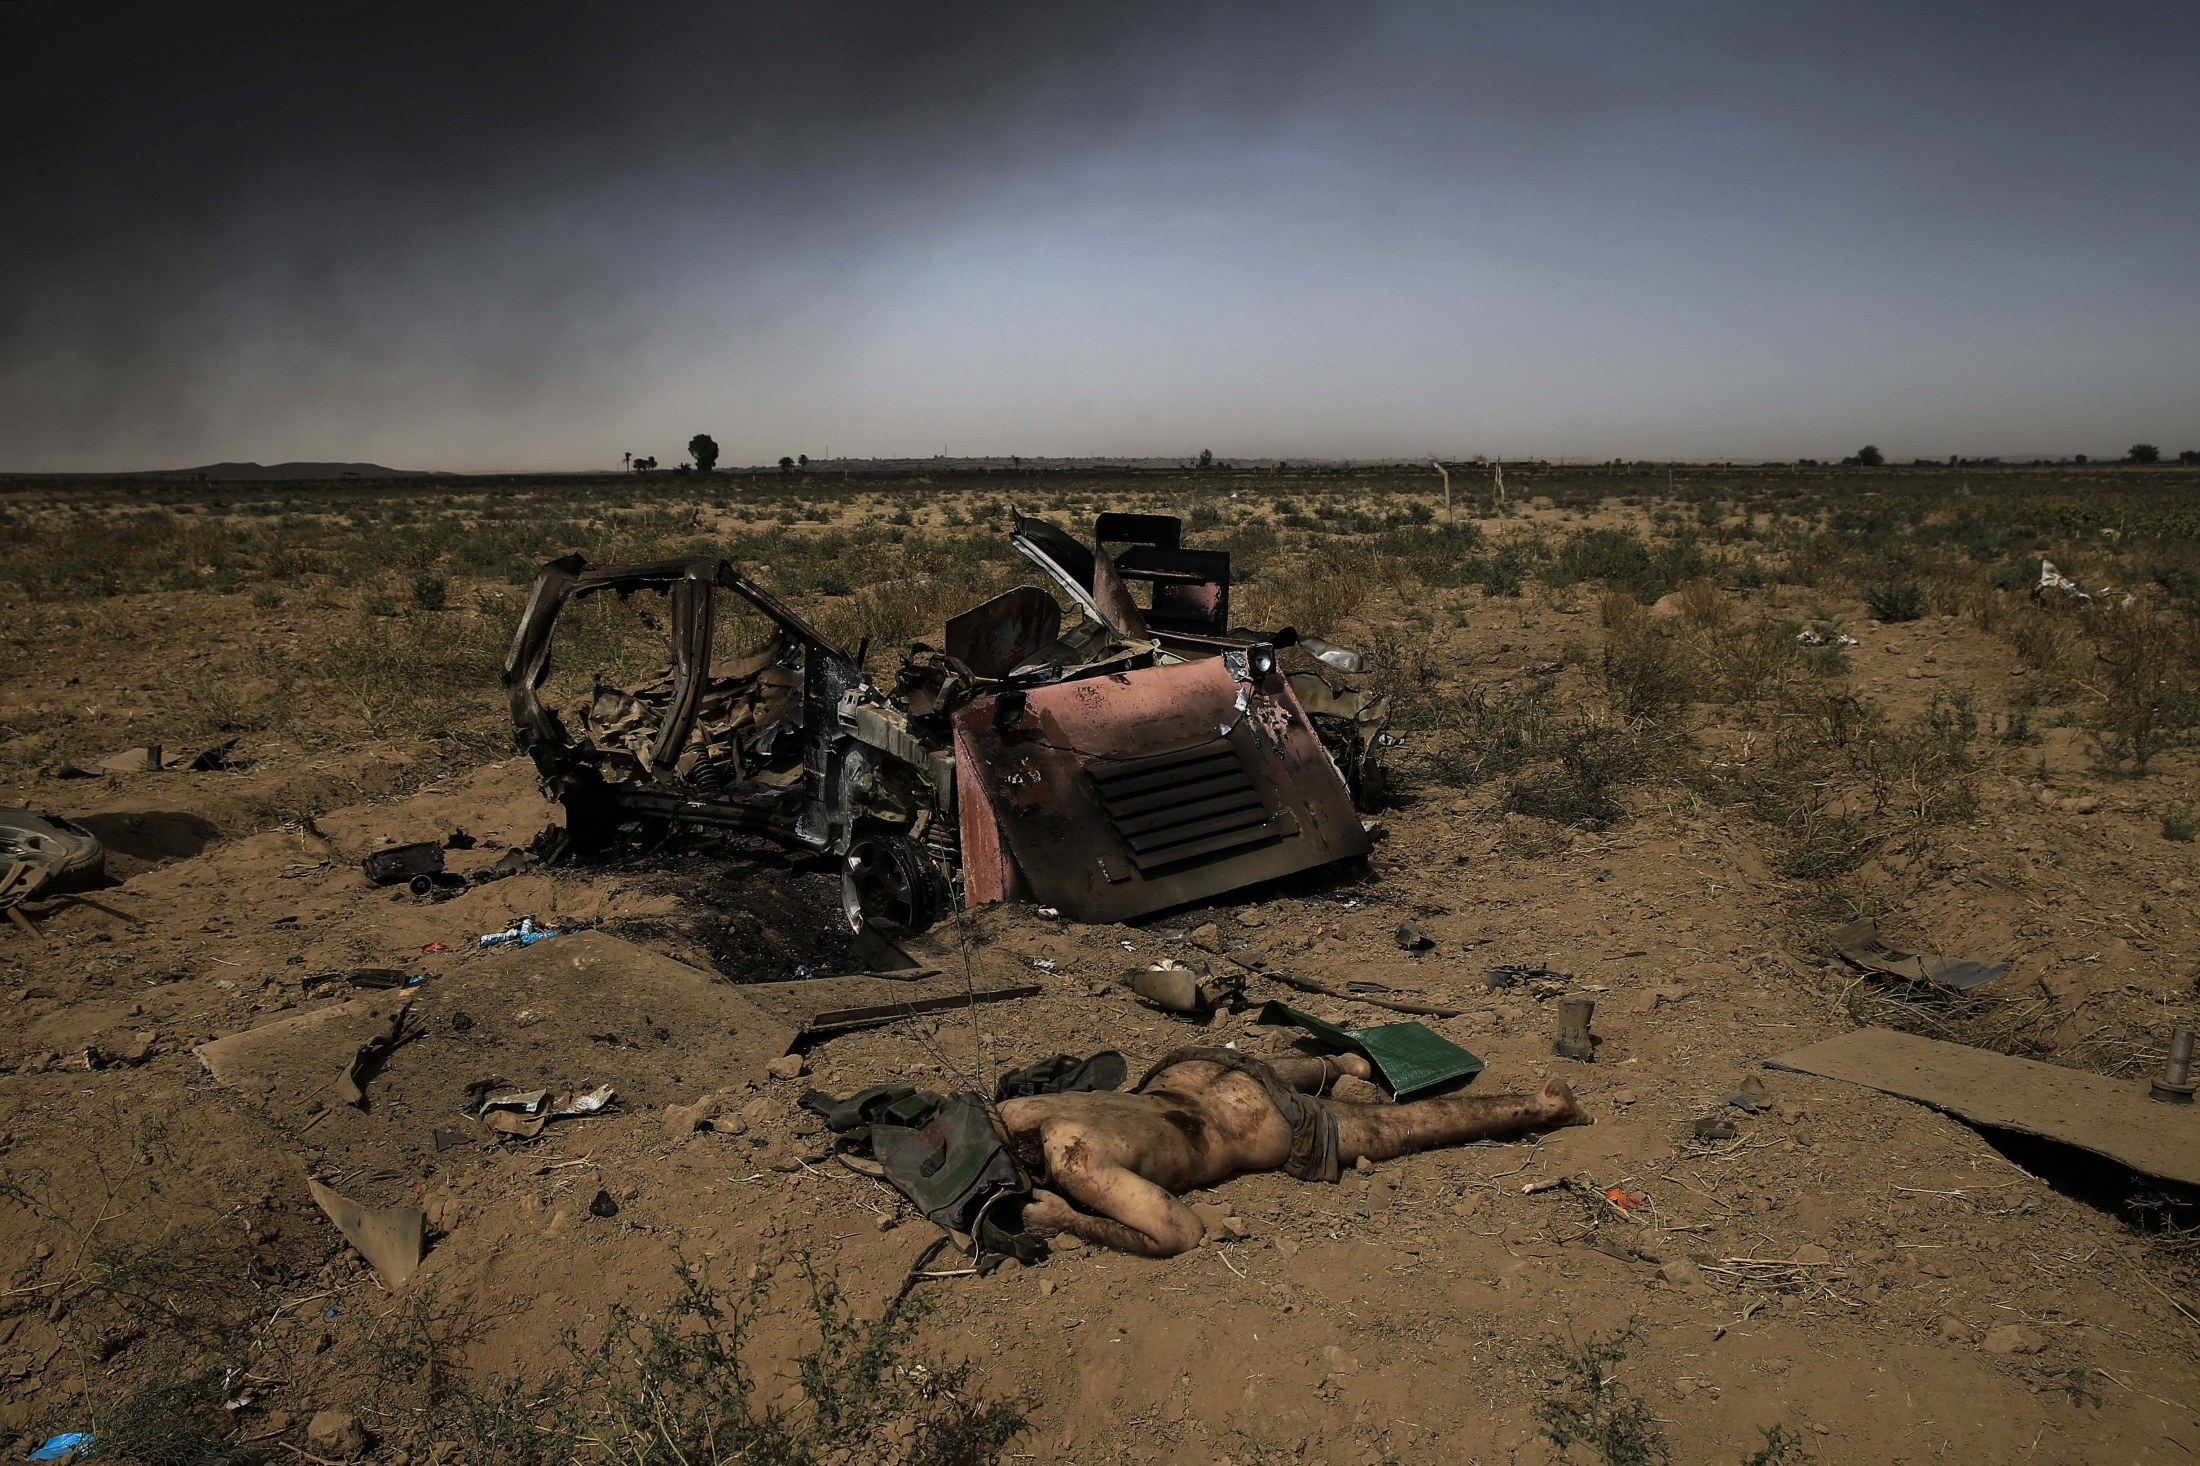 The decapitated body of an IS member lays on the roadside on the frontline in Qayarah, Iraq. Weeks after the liberation of the town, multiple suicide attacks were repelled by the Iraqi army. Villagers of the town took revenge on a captured IS member for their two years oppression while living under the militants' rule. The villagers killed and decapitated the IS member and took his clothes of to humiliate him.